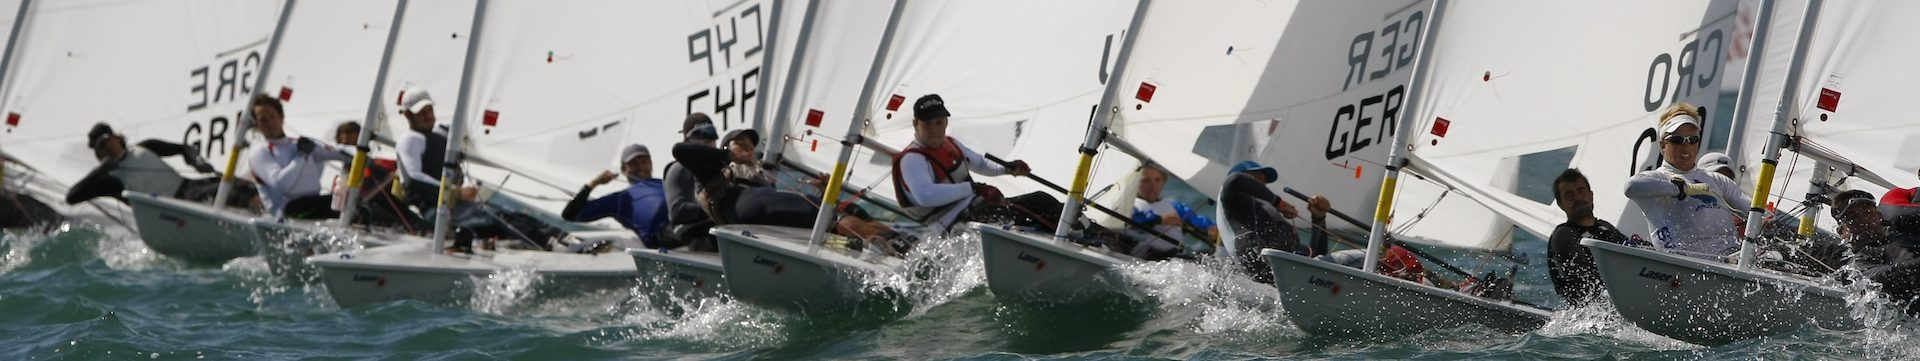 2019 Laser 4.7 Youth World Championships